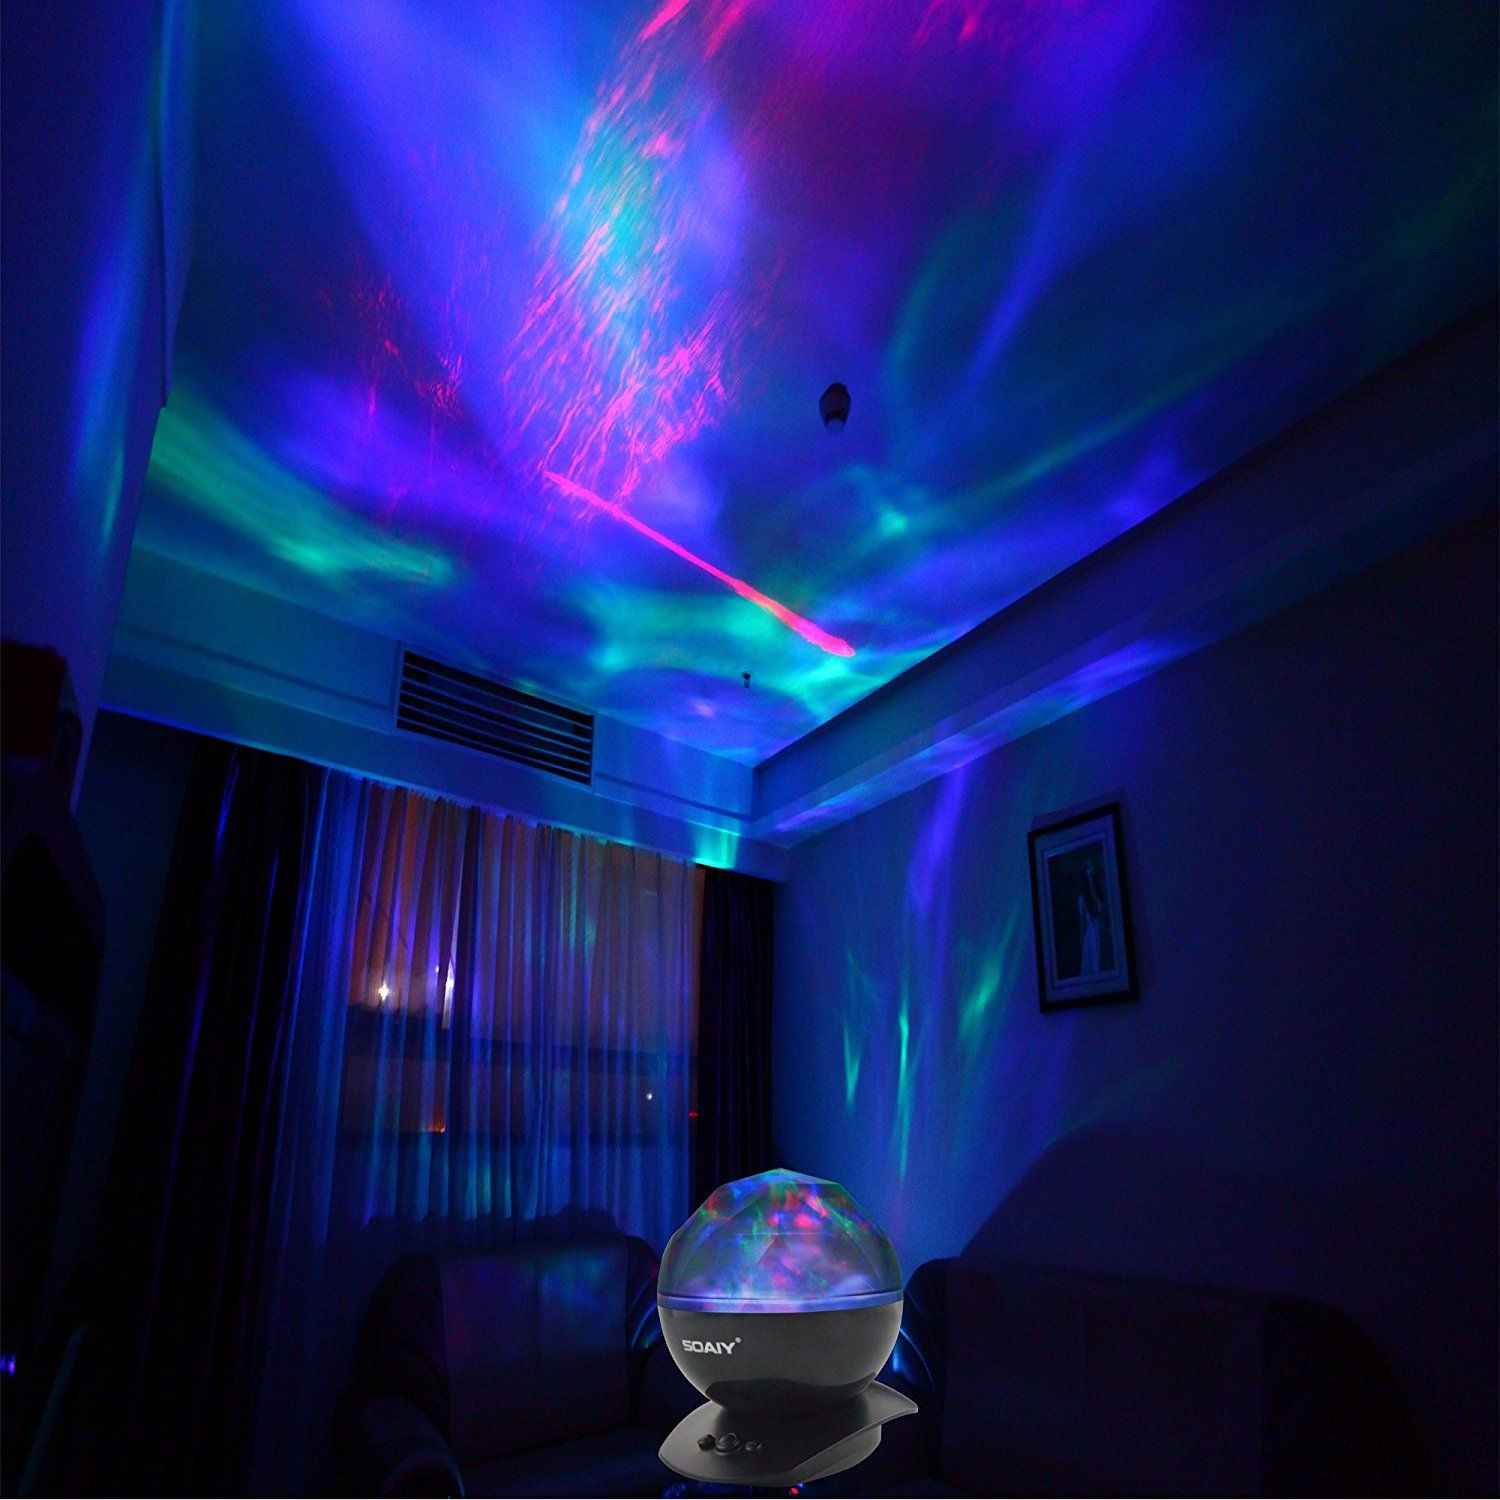 Soaiy sleep soother aurora projection led night light lamp with 8 soaiy sleep soother aurora projection led night light lamp with 8 lighting mode speaker relaxing light show for baby kids and adults mood light for baby mozeypictures Image collections